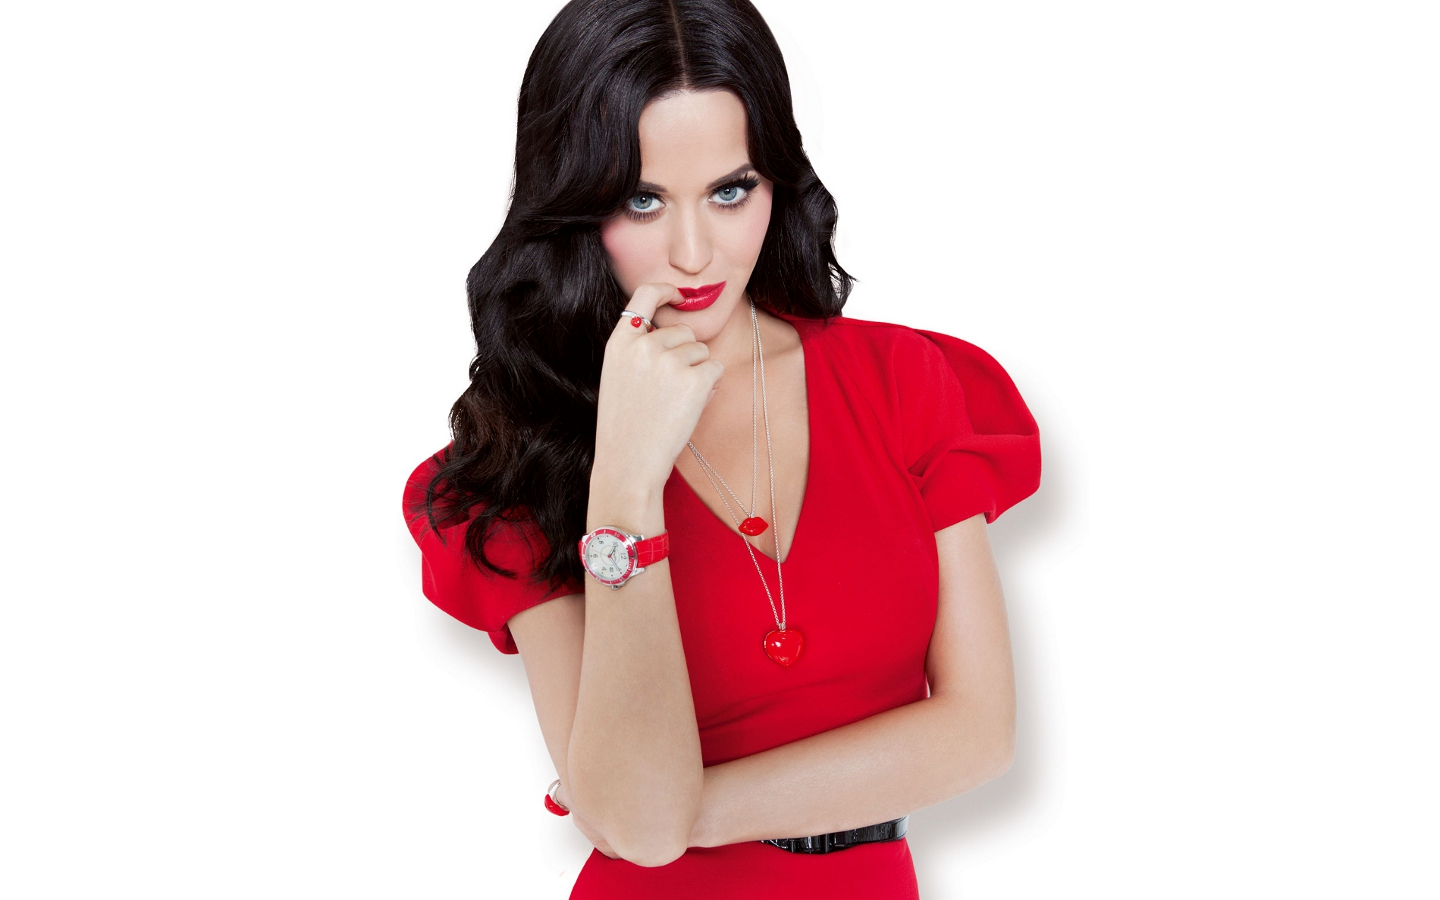 Katy Perry lady in red